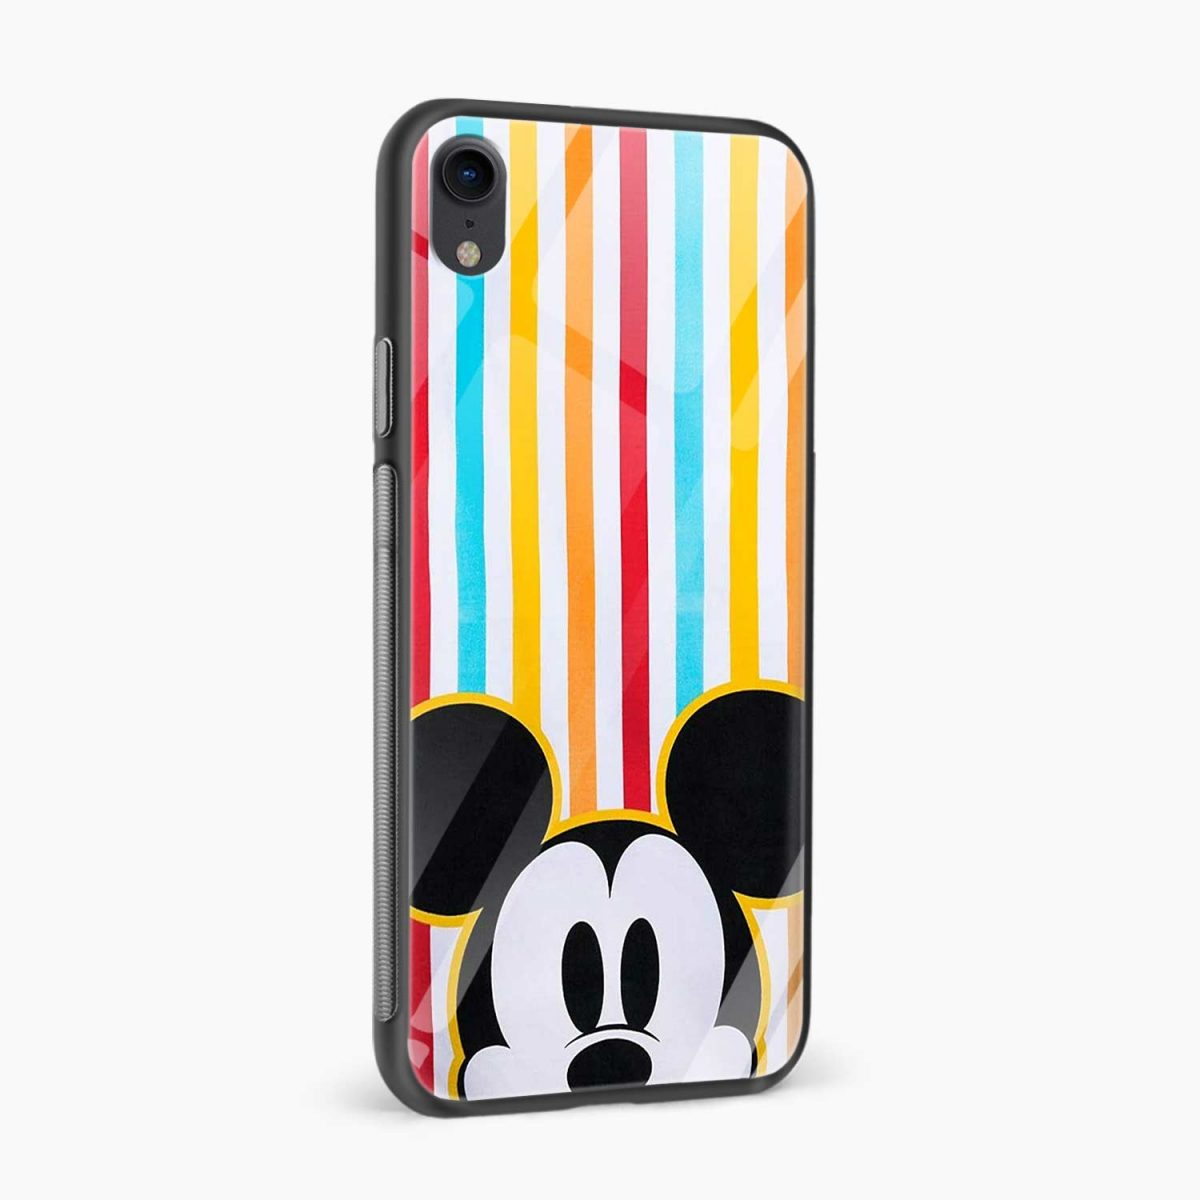 rigid spy mickey mouse apple iphone xr back cover side view